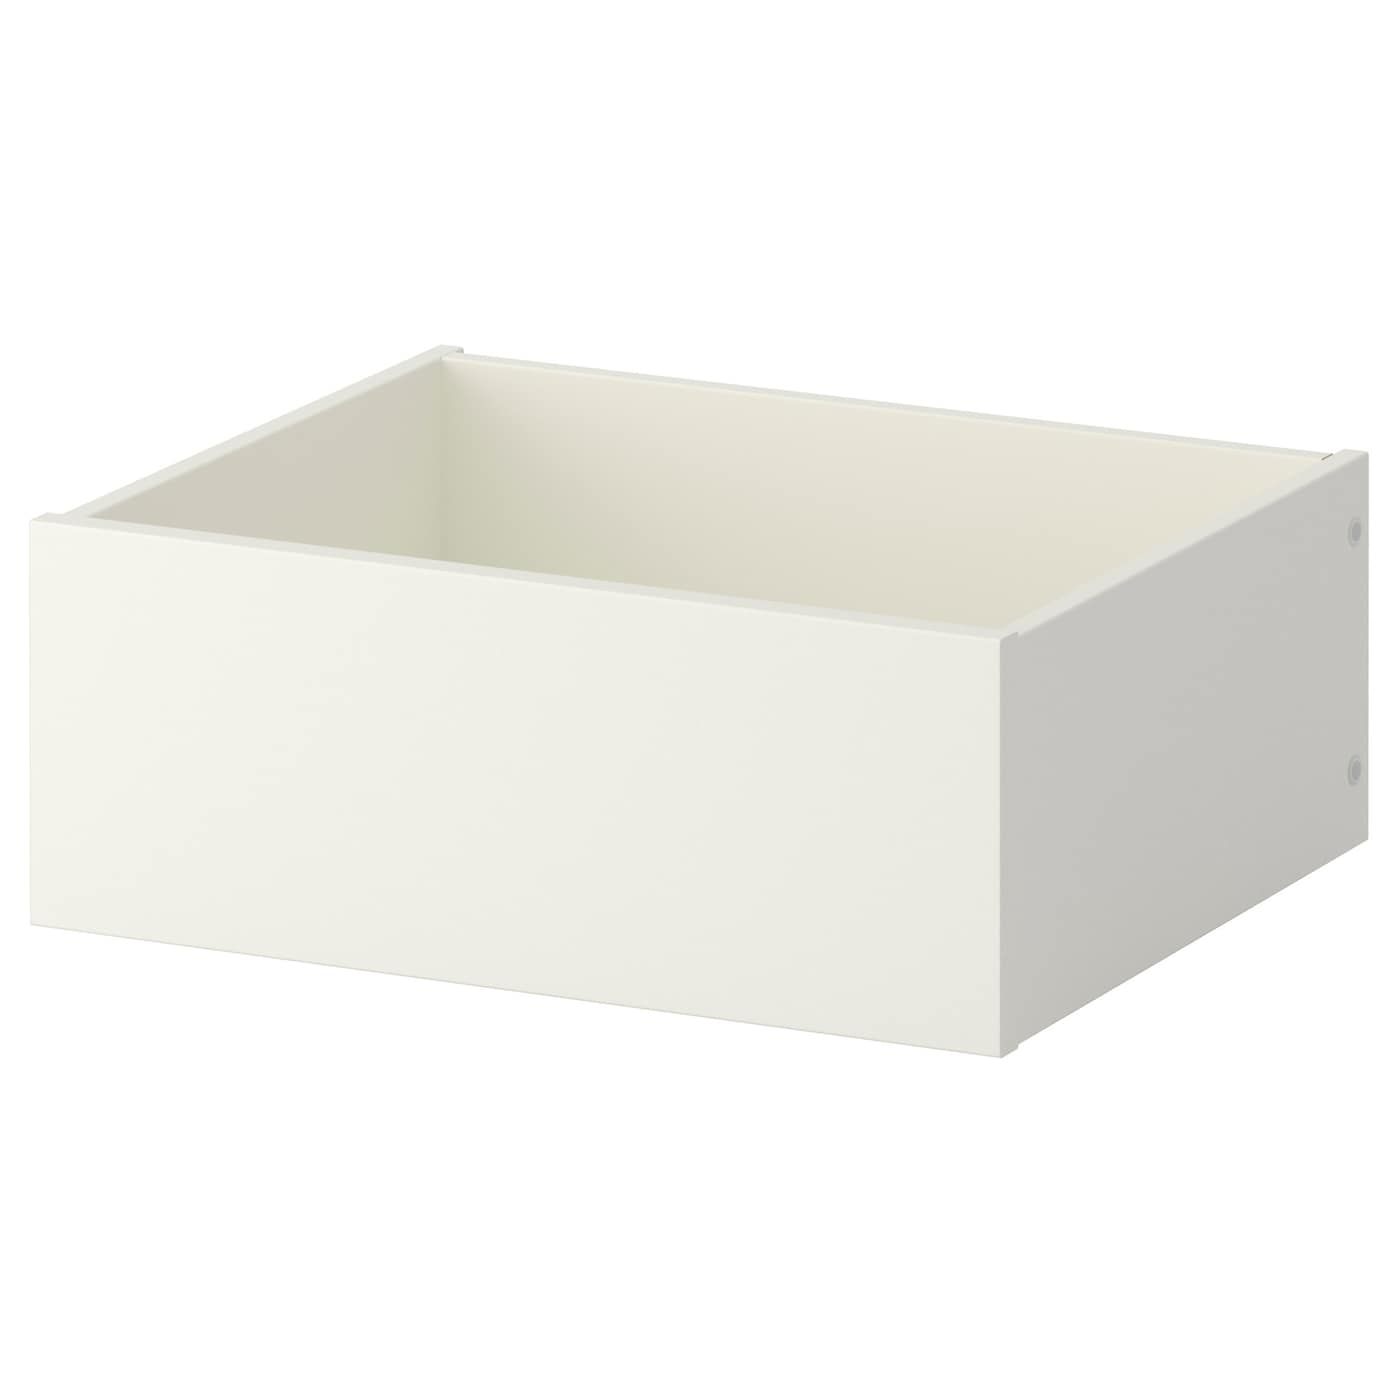 Komplement drawer white 50x35 cm ikea for Ikea complementi